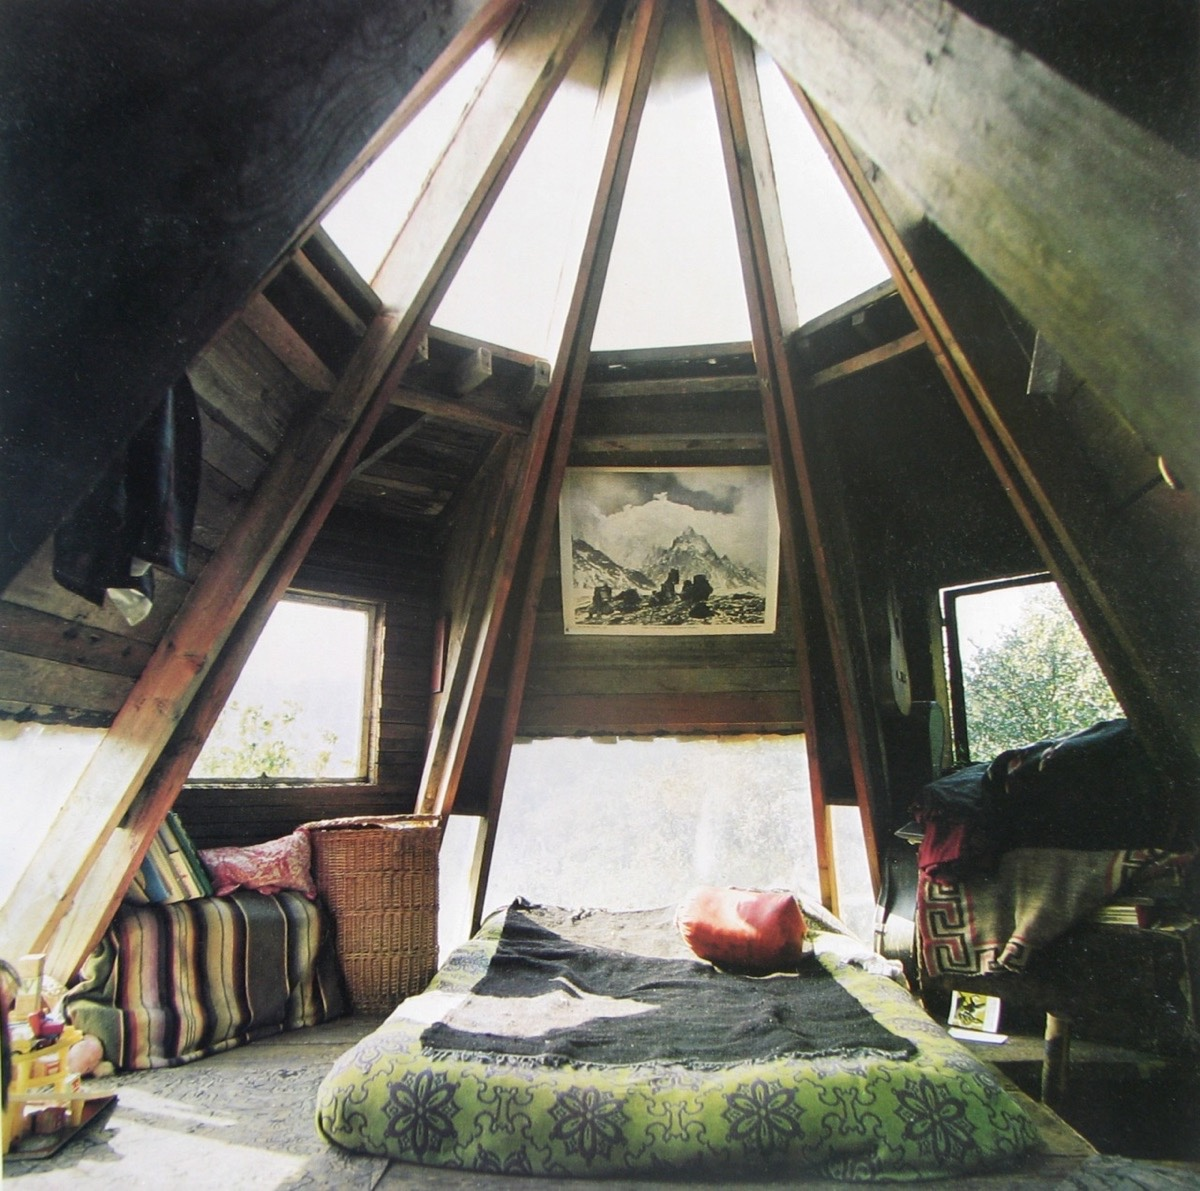 Cone Shaped Attic Bedroom Art Hanging On Wall - 25 amazing attic bedrooms that you would absolutely enjoy sleeping in